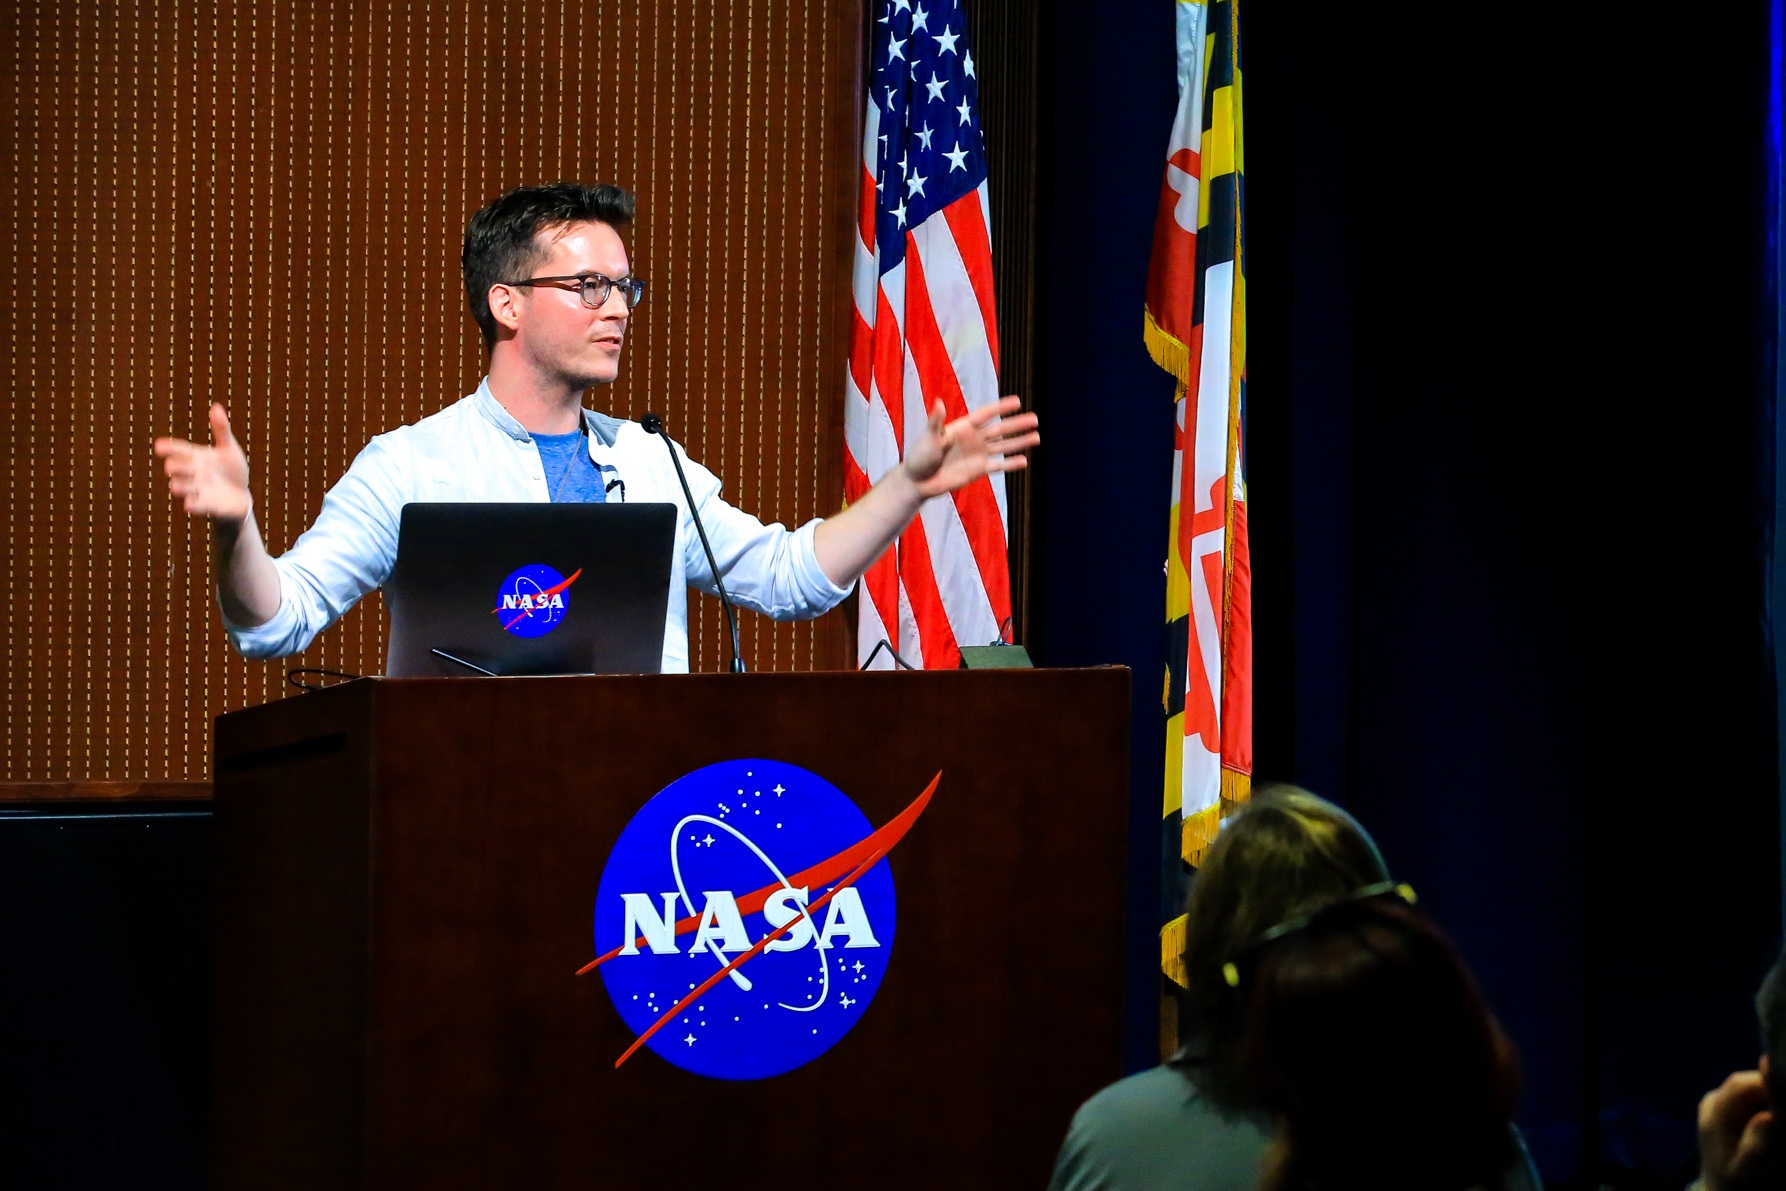 Jon+Carmichael_Eclipse_108_NASA_Speech_23.jpg